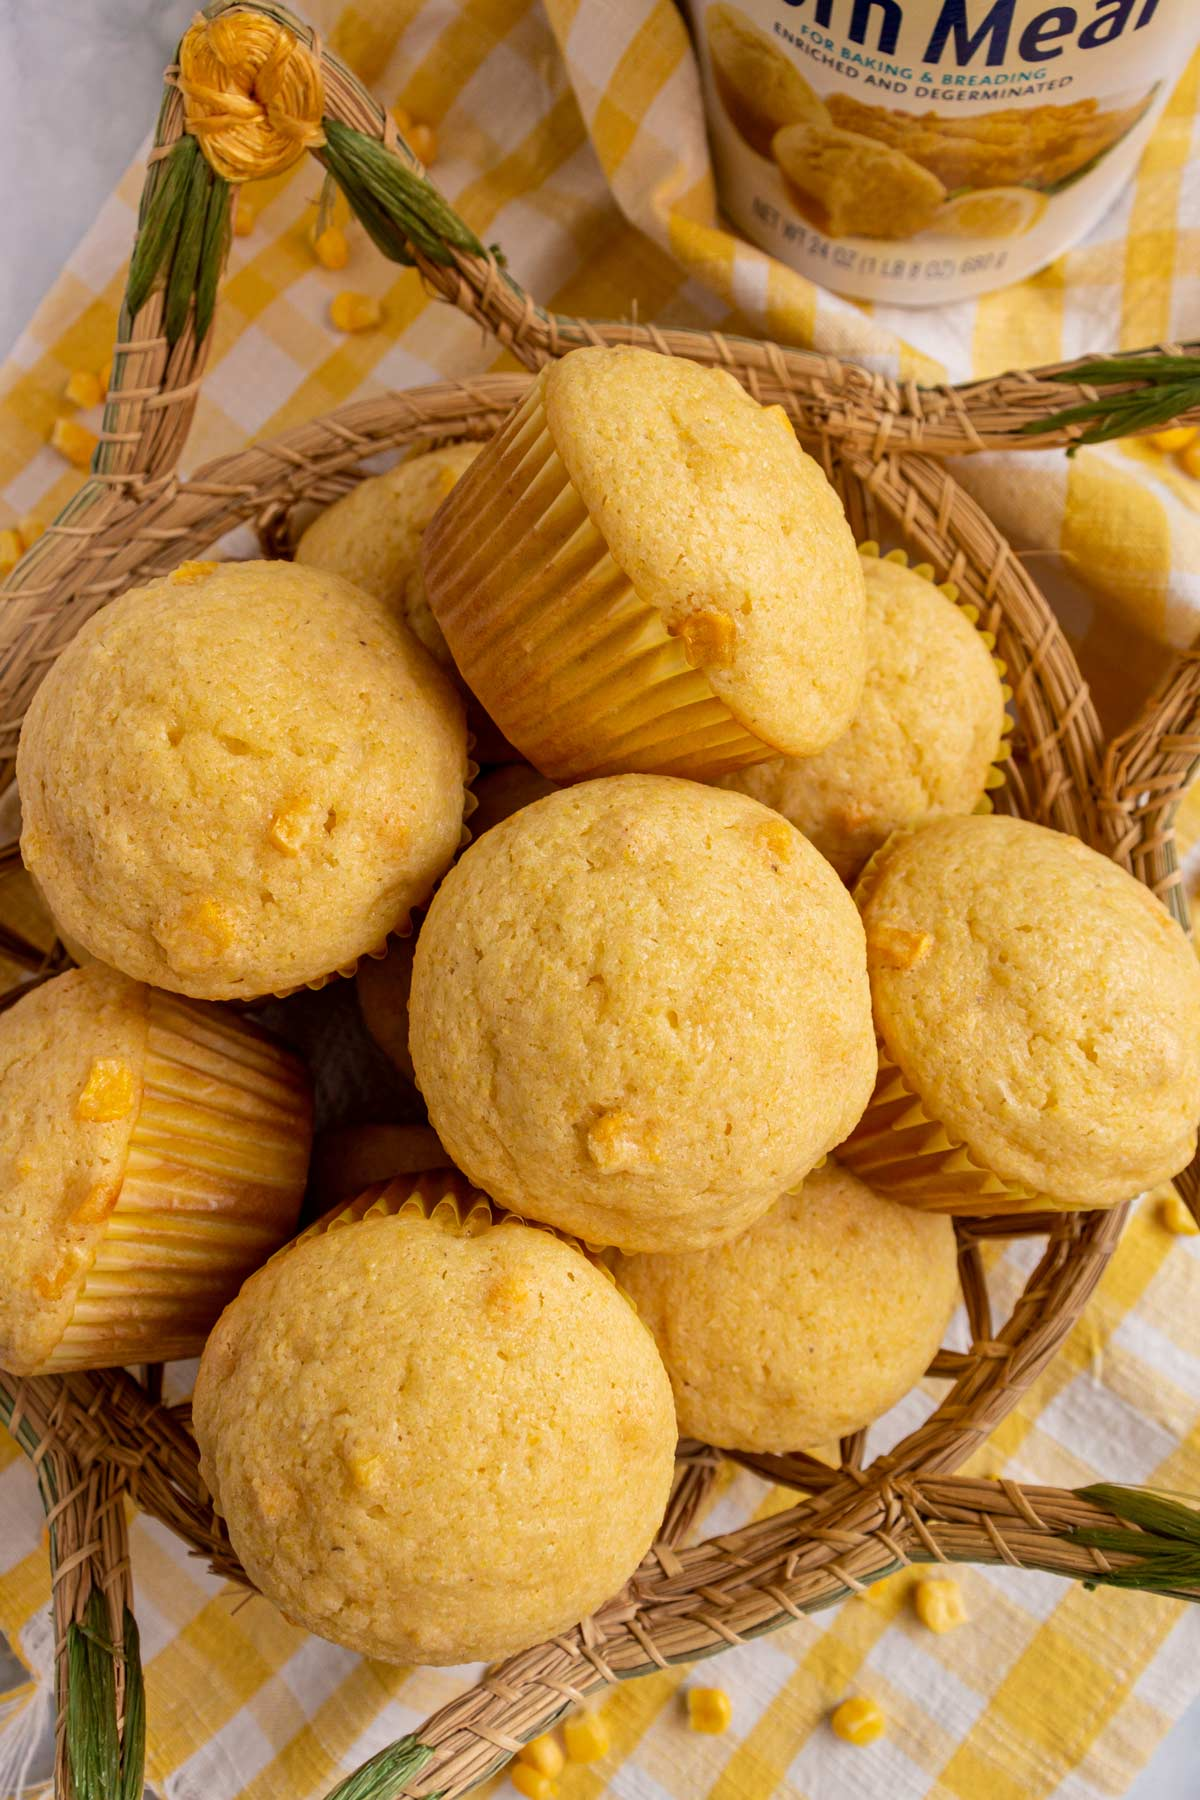 A basket of corn muffins on a yellow and white gingham towel.